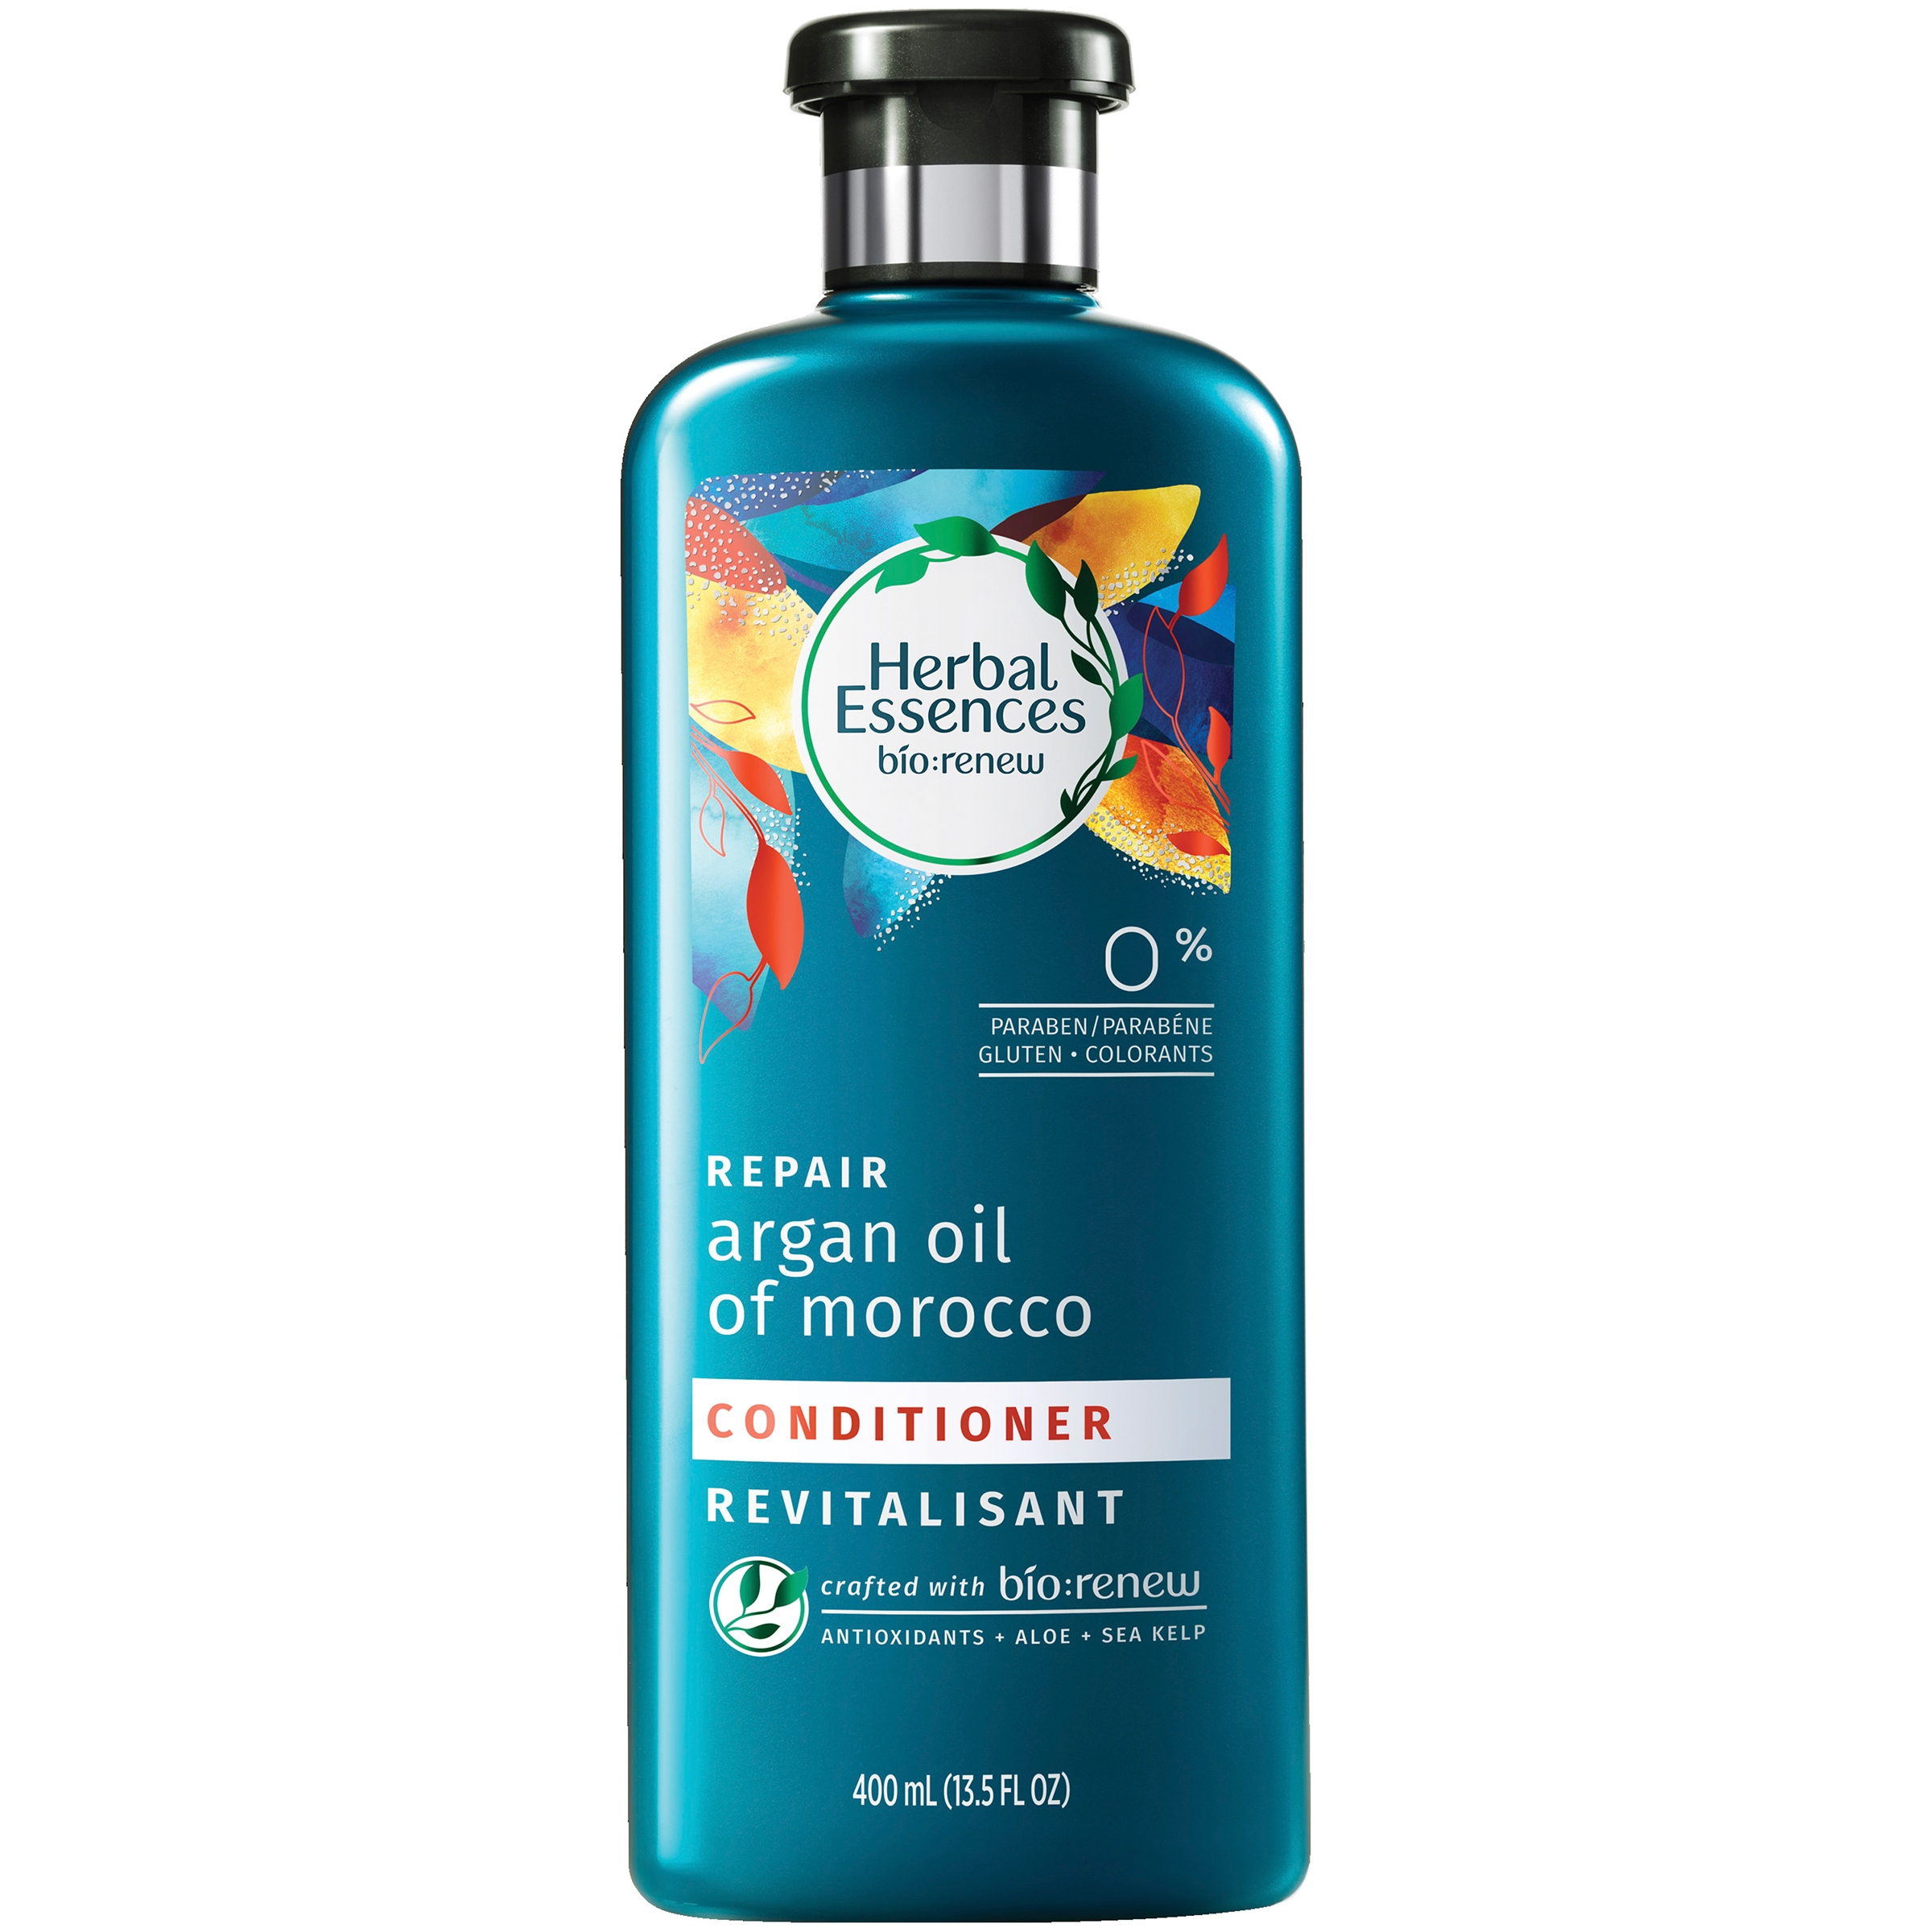 Herbal Essences Bio:renew Argan Oil of Morocco Conditioner, 13.5 Fl Oz